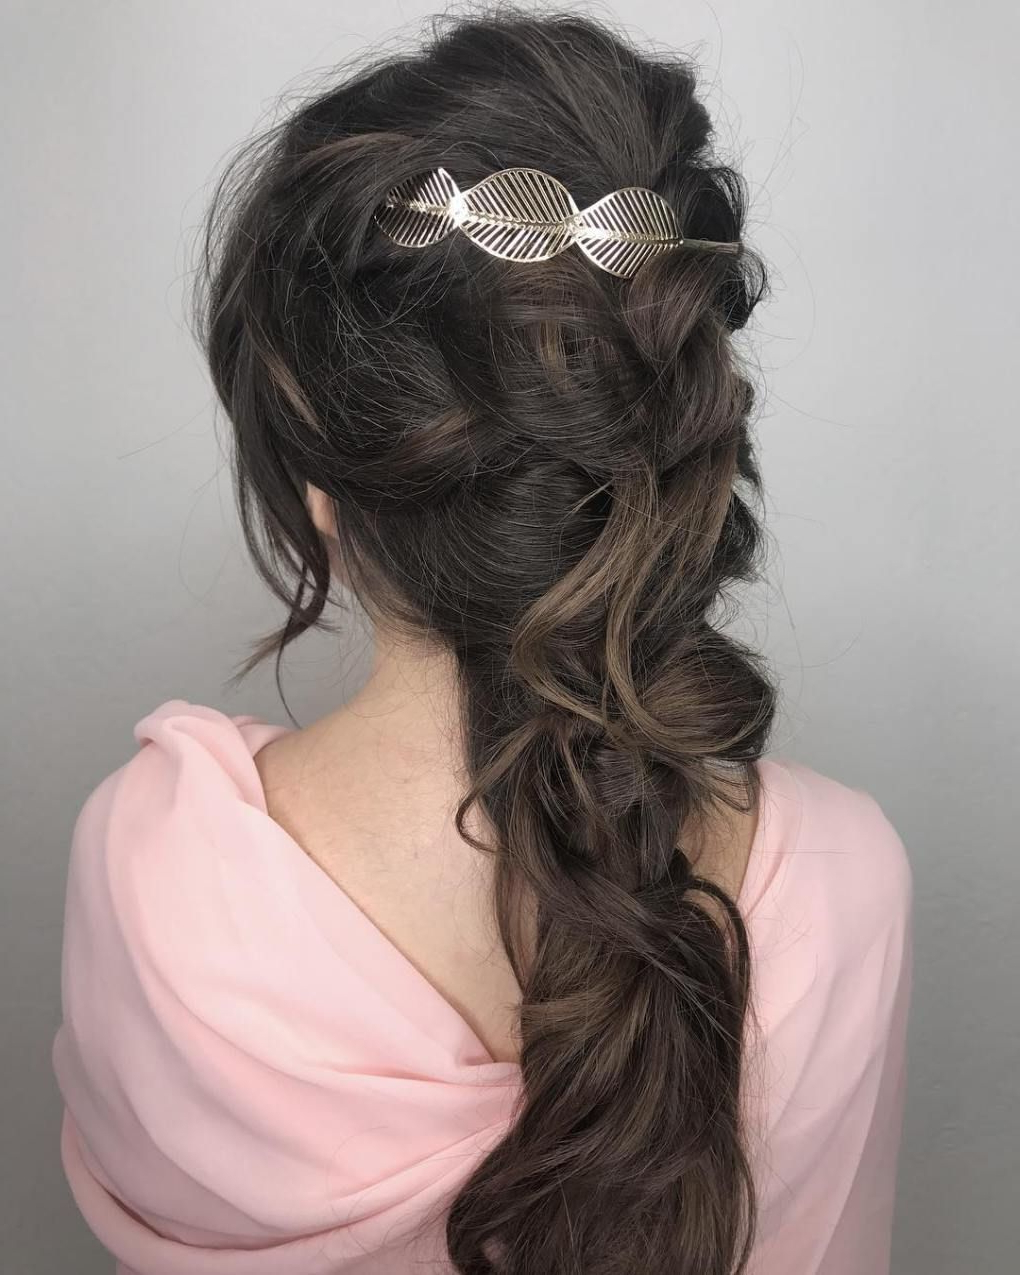 Fashionable Grecian Inspired Ponytail Braid Hairstyles Inside 20 Best Greek Hairstyles We're Obsessed With (View 4 of 20)